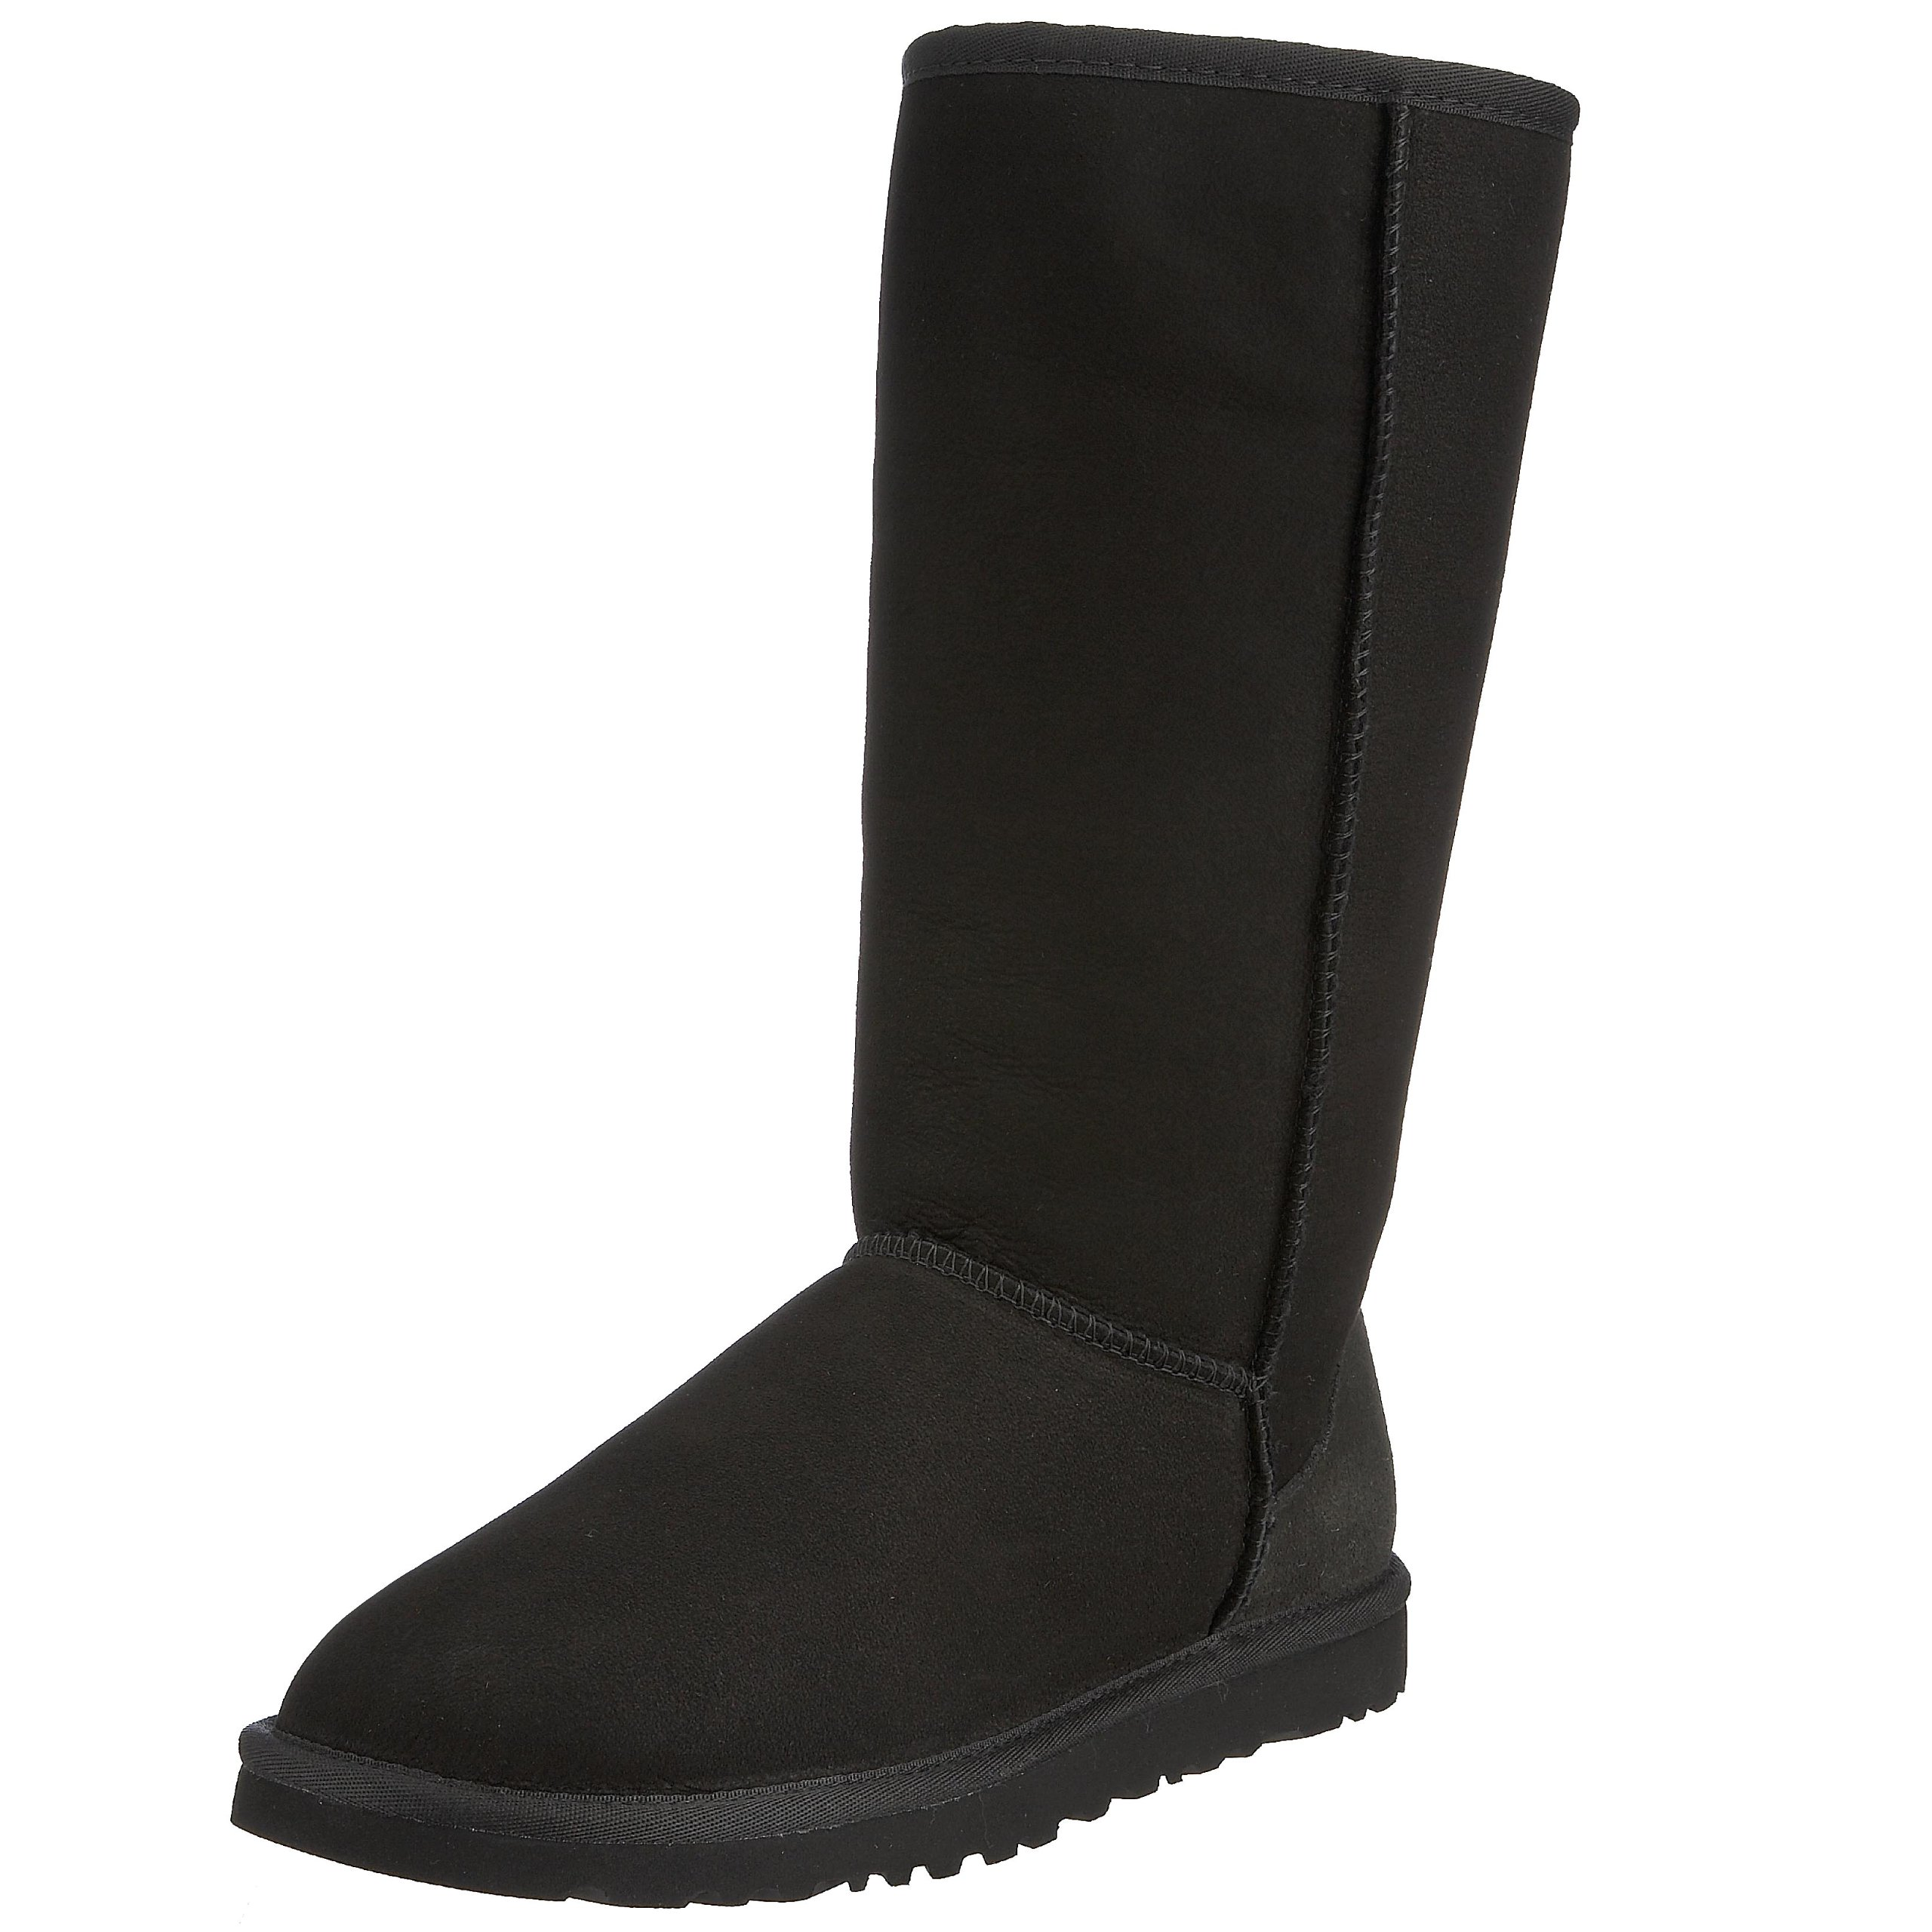 Ugg Women's Classic Tall Boot, Black, 8 M US